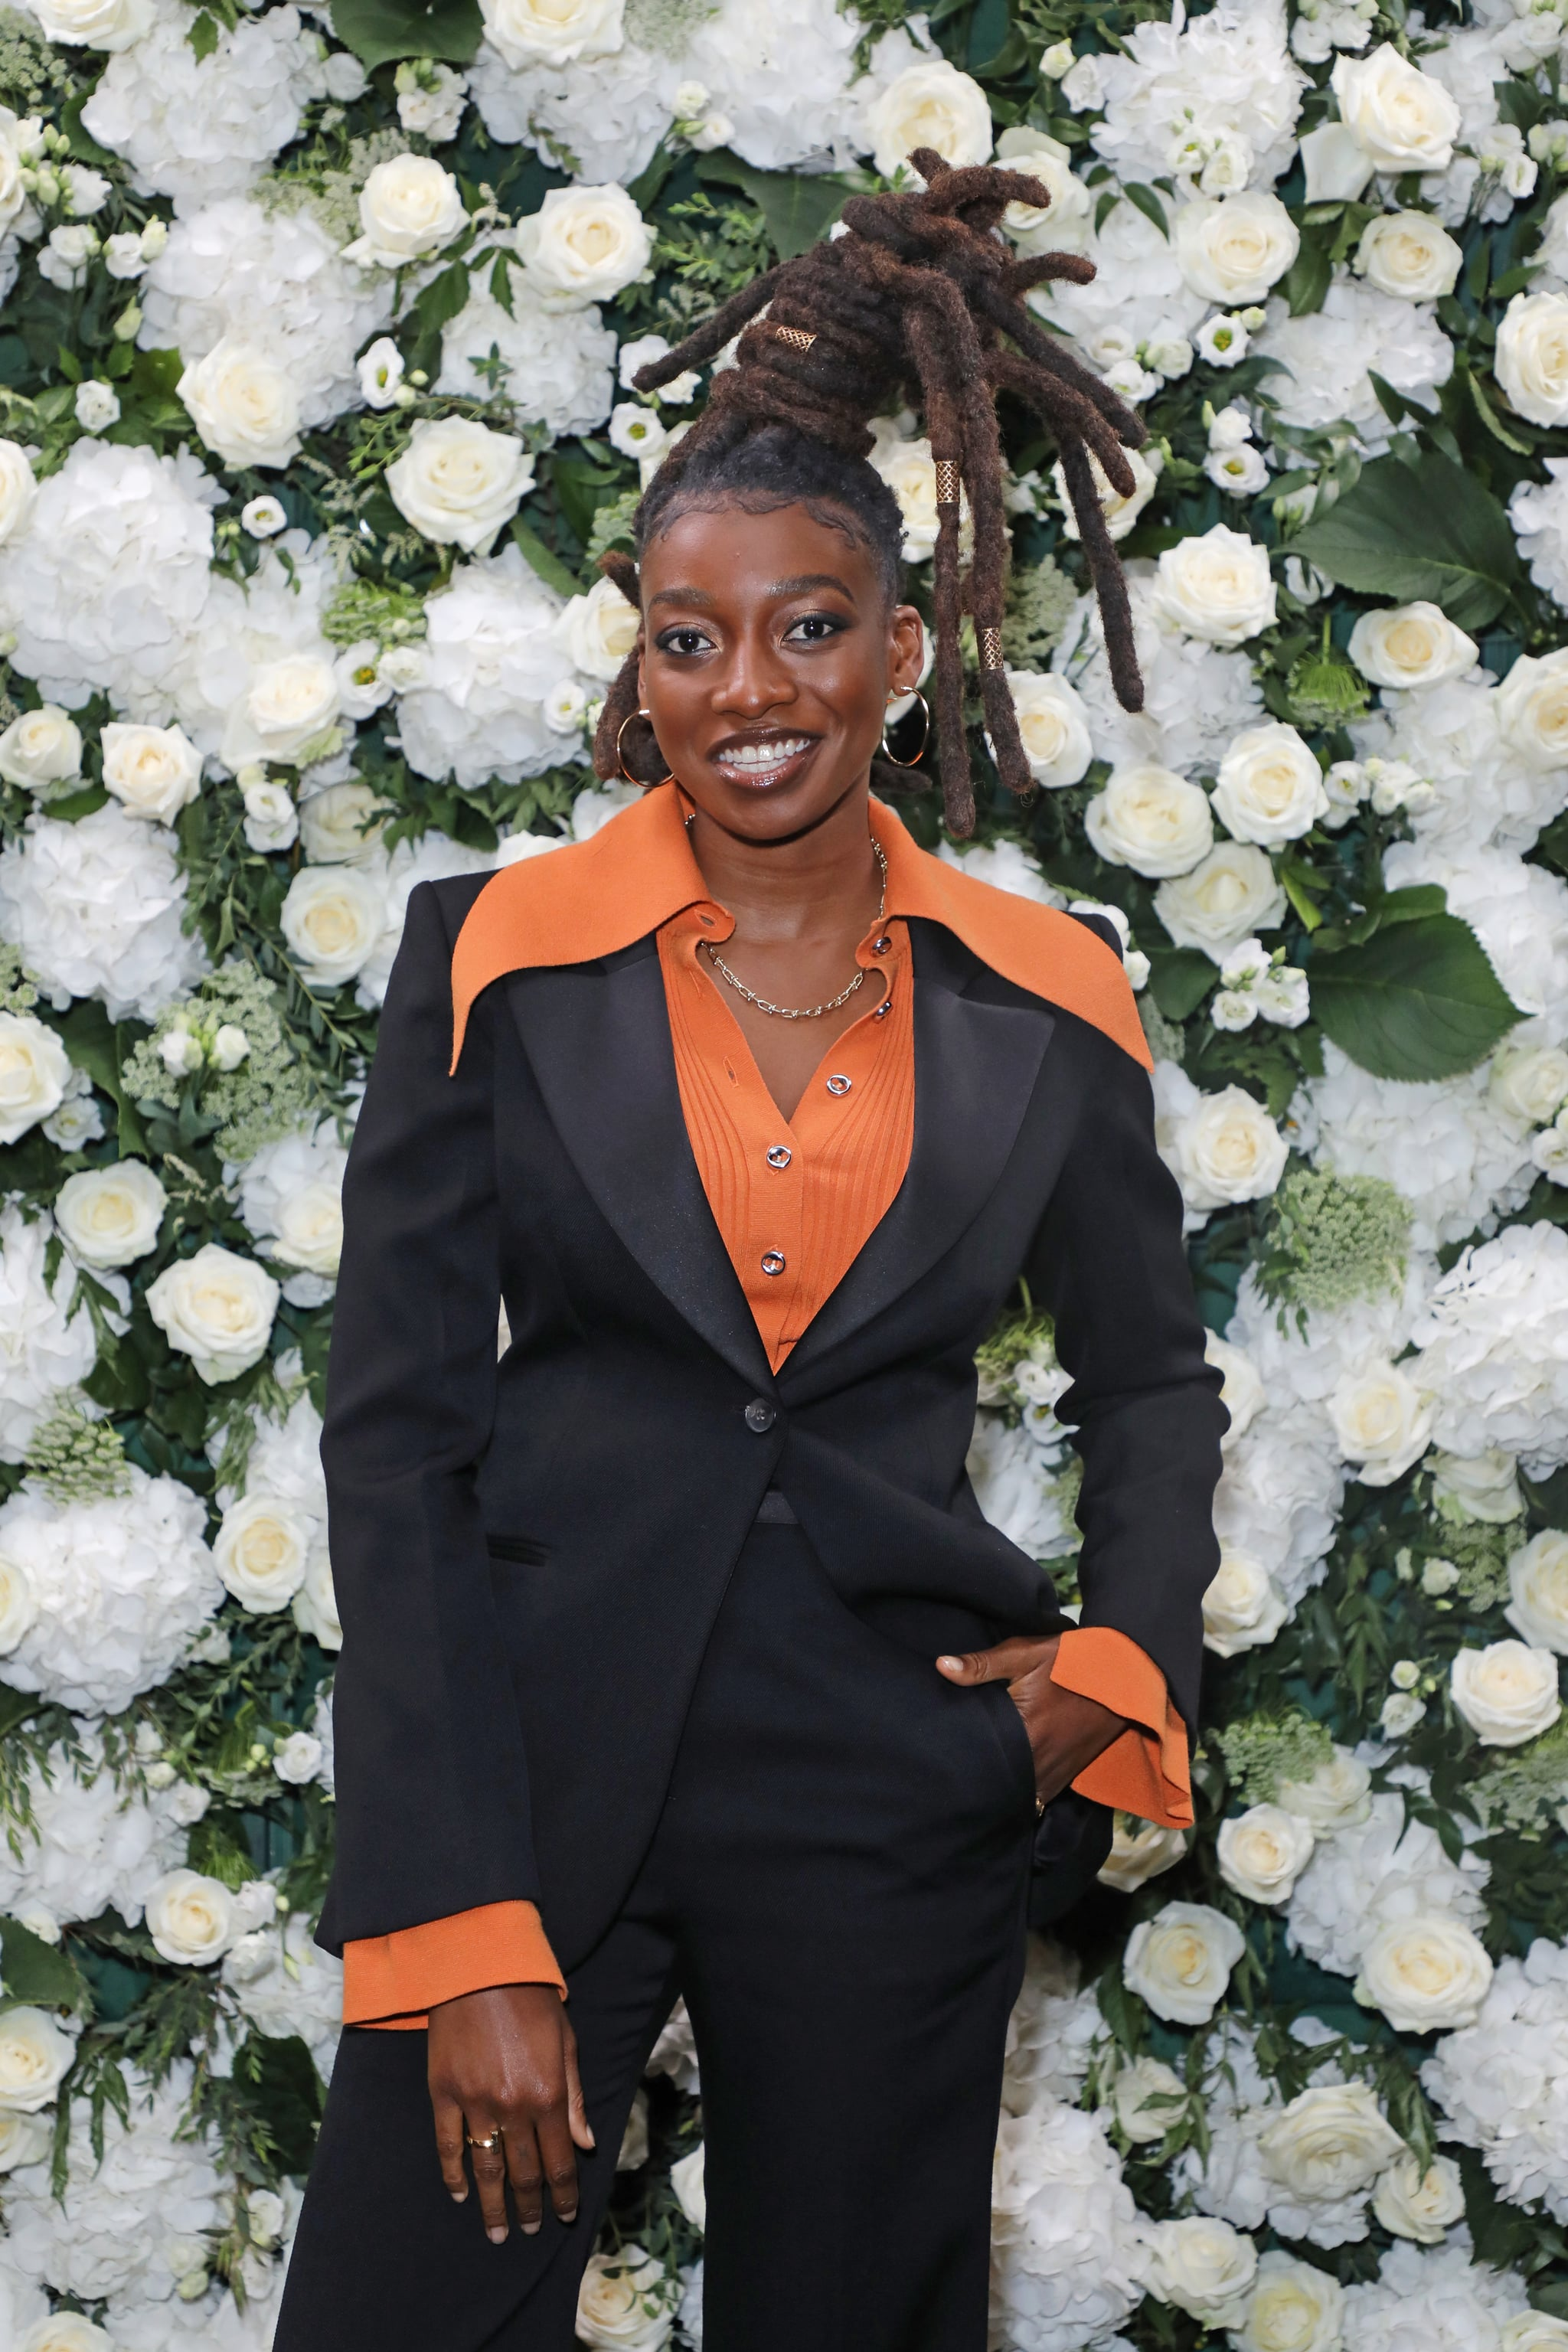 LONDON, ENGLAND - SEPTEMBER 20:  Little Simz attends an intimate dinner and party hosted by British Vogue and Tiffany & Co. to celebrate Fashion and Film during London Fashion Week September 2021 at The Londoner Hotel on September 20, 2021 in London, England.  (Photo by David M. Benett/Dave Benett/Getty Images)